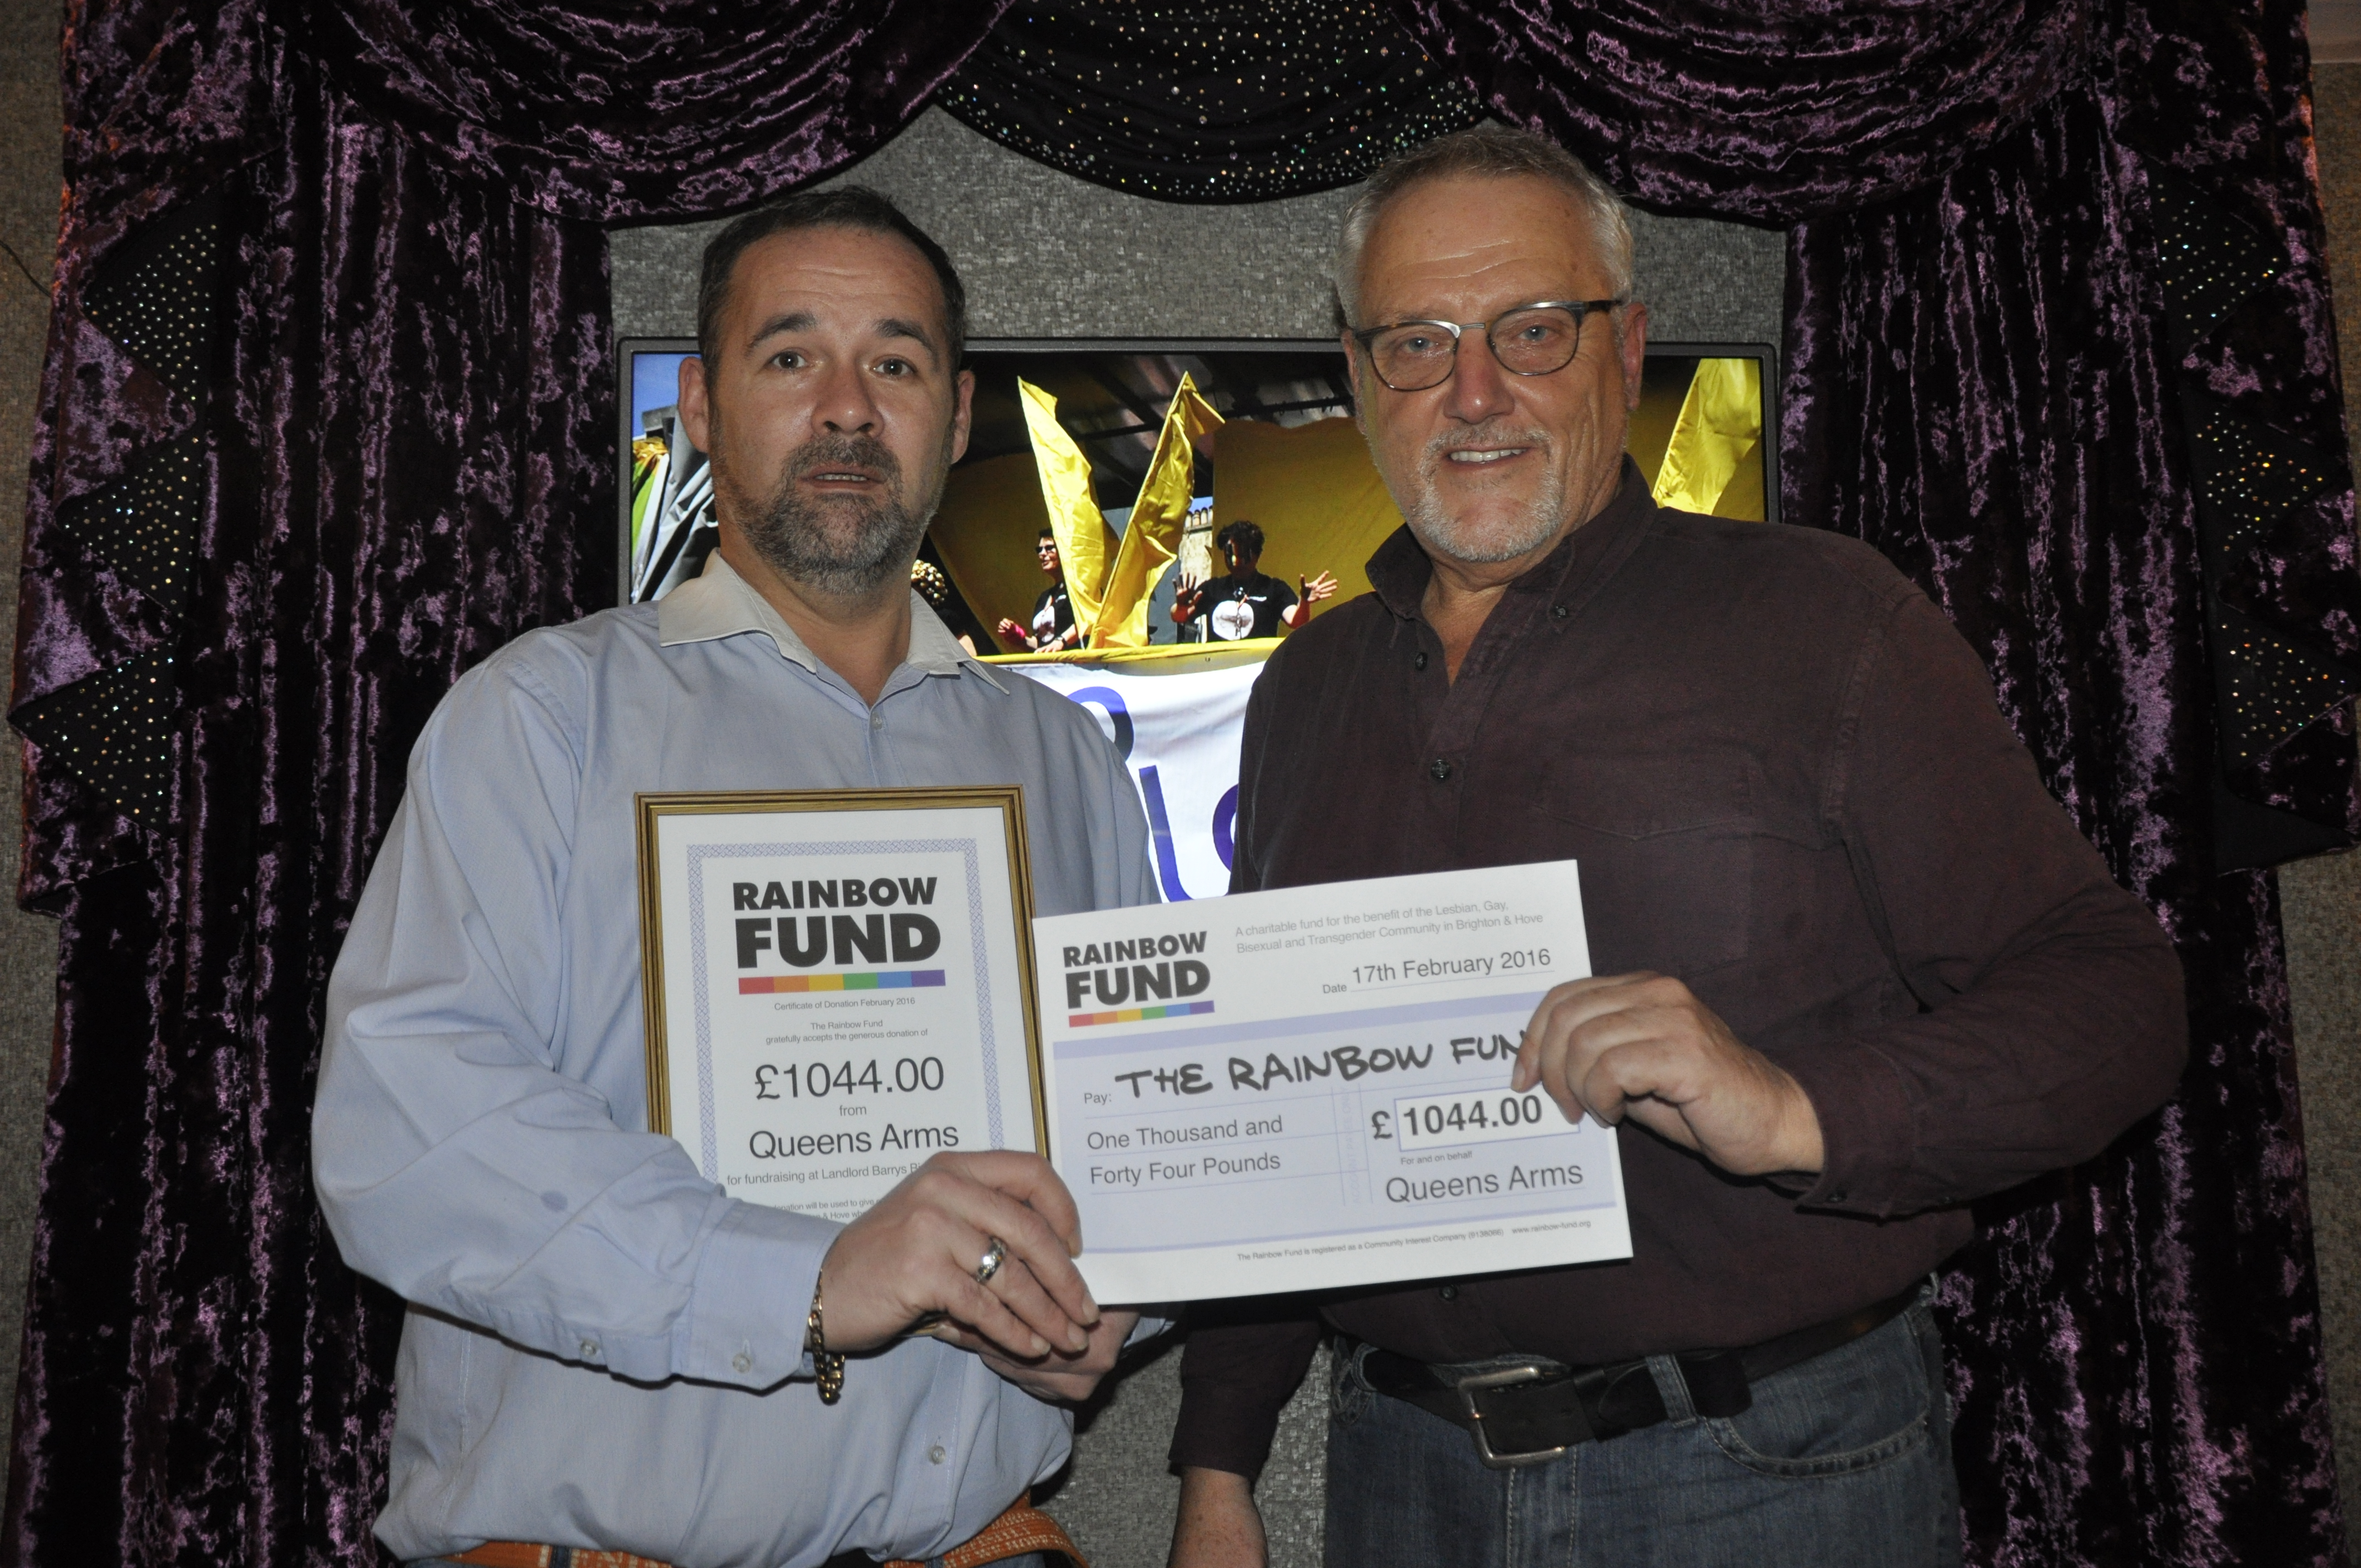 Queens Arms raises over £1,000 for Rainbow Fund